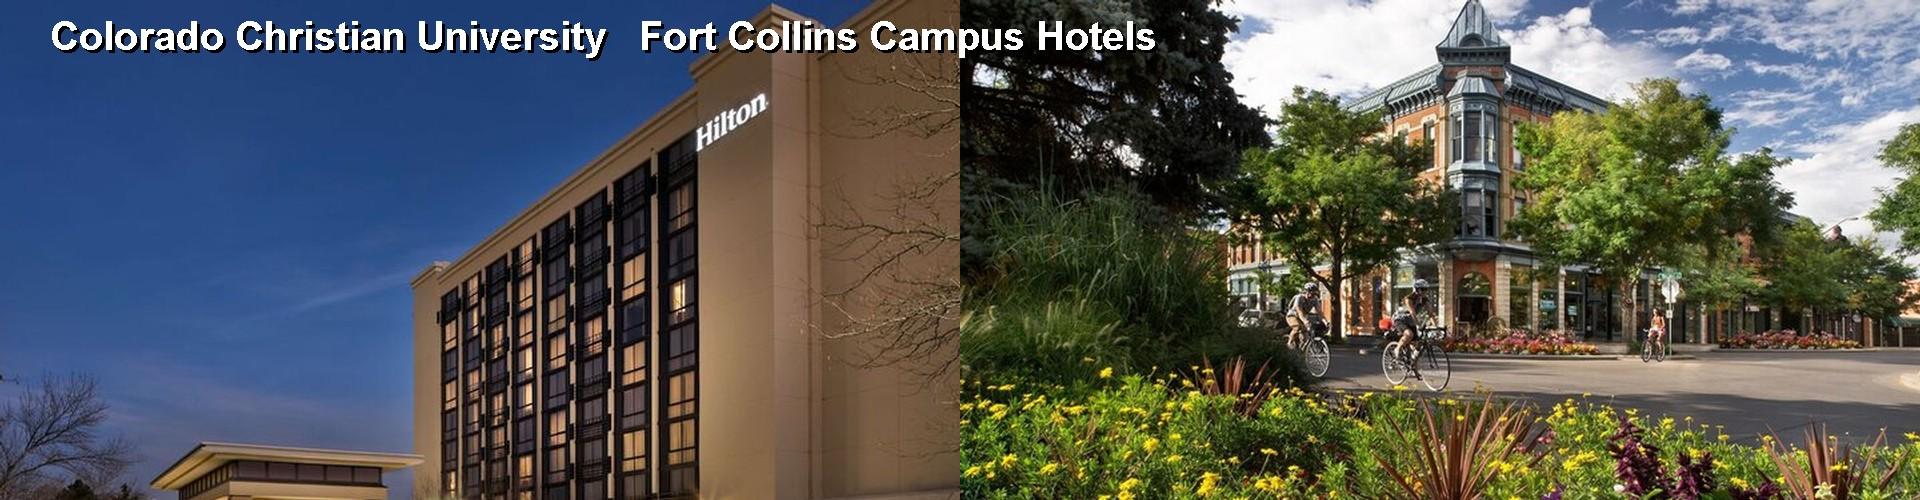 5 Best Hotels near Colorado Christian University Fort Collins Campus